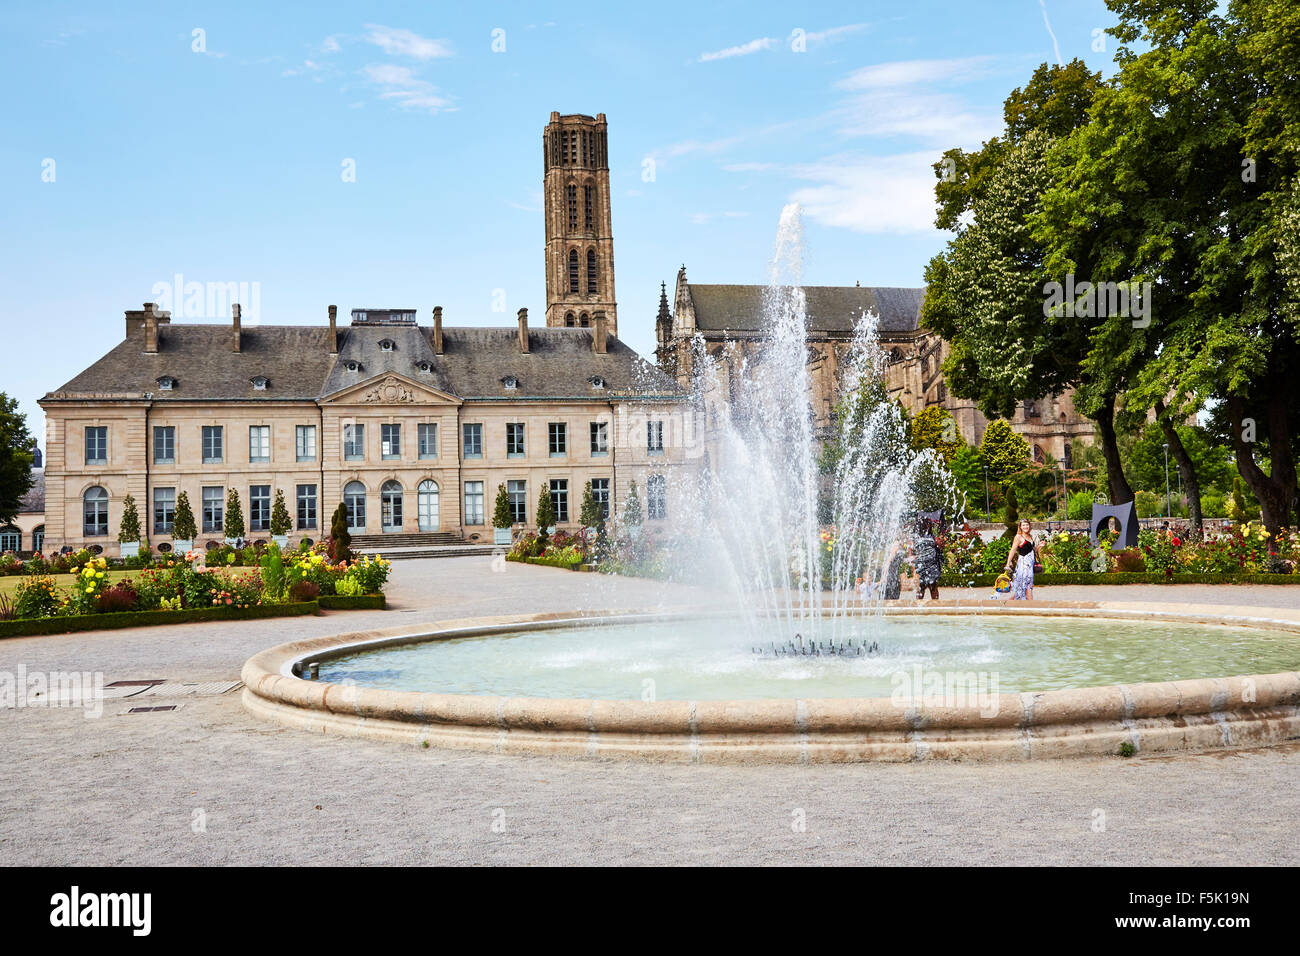 Beaux Arts Museum and Cathedral Saint-Etienne in Limoges, Haute-Vienne, Limousin, France. Stock Photo